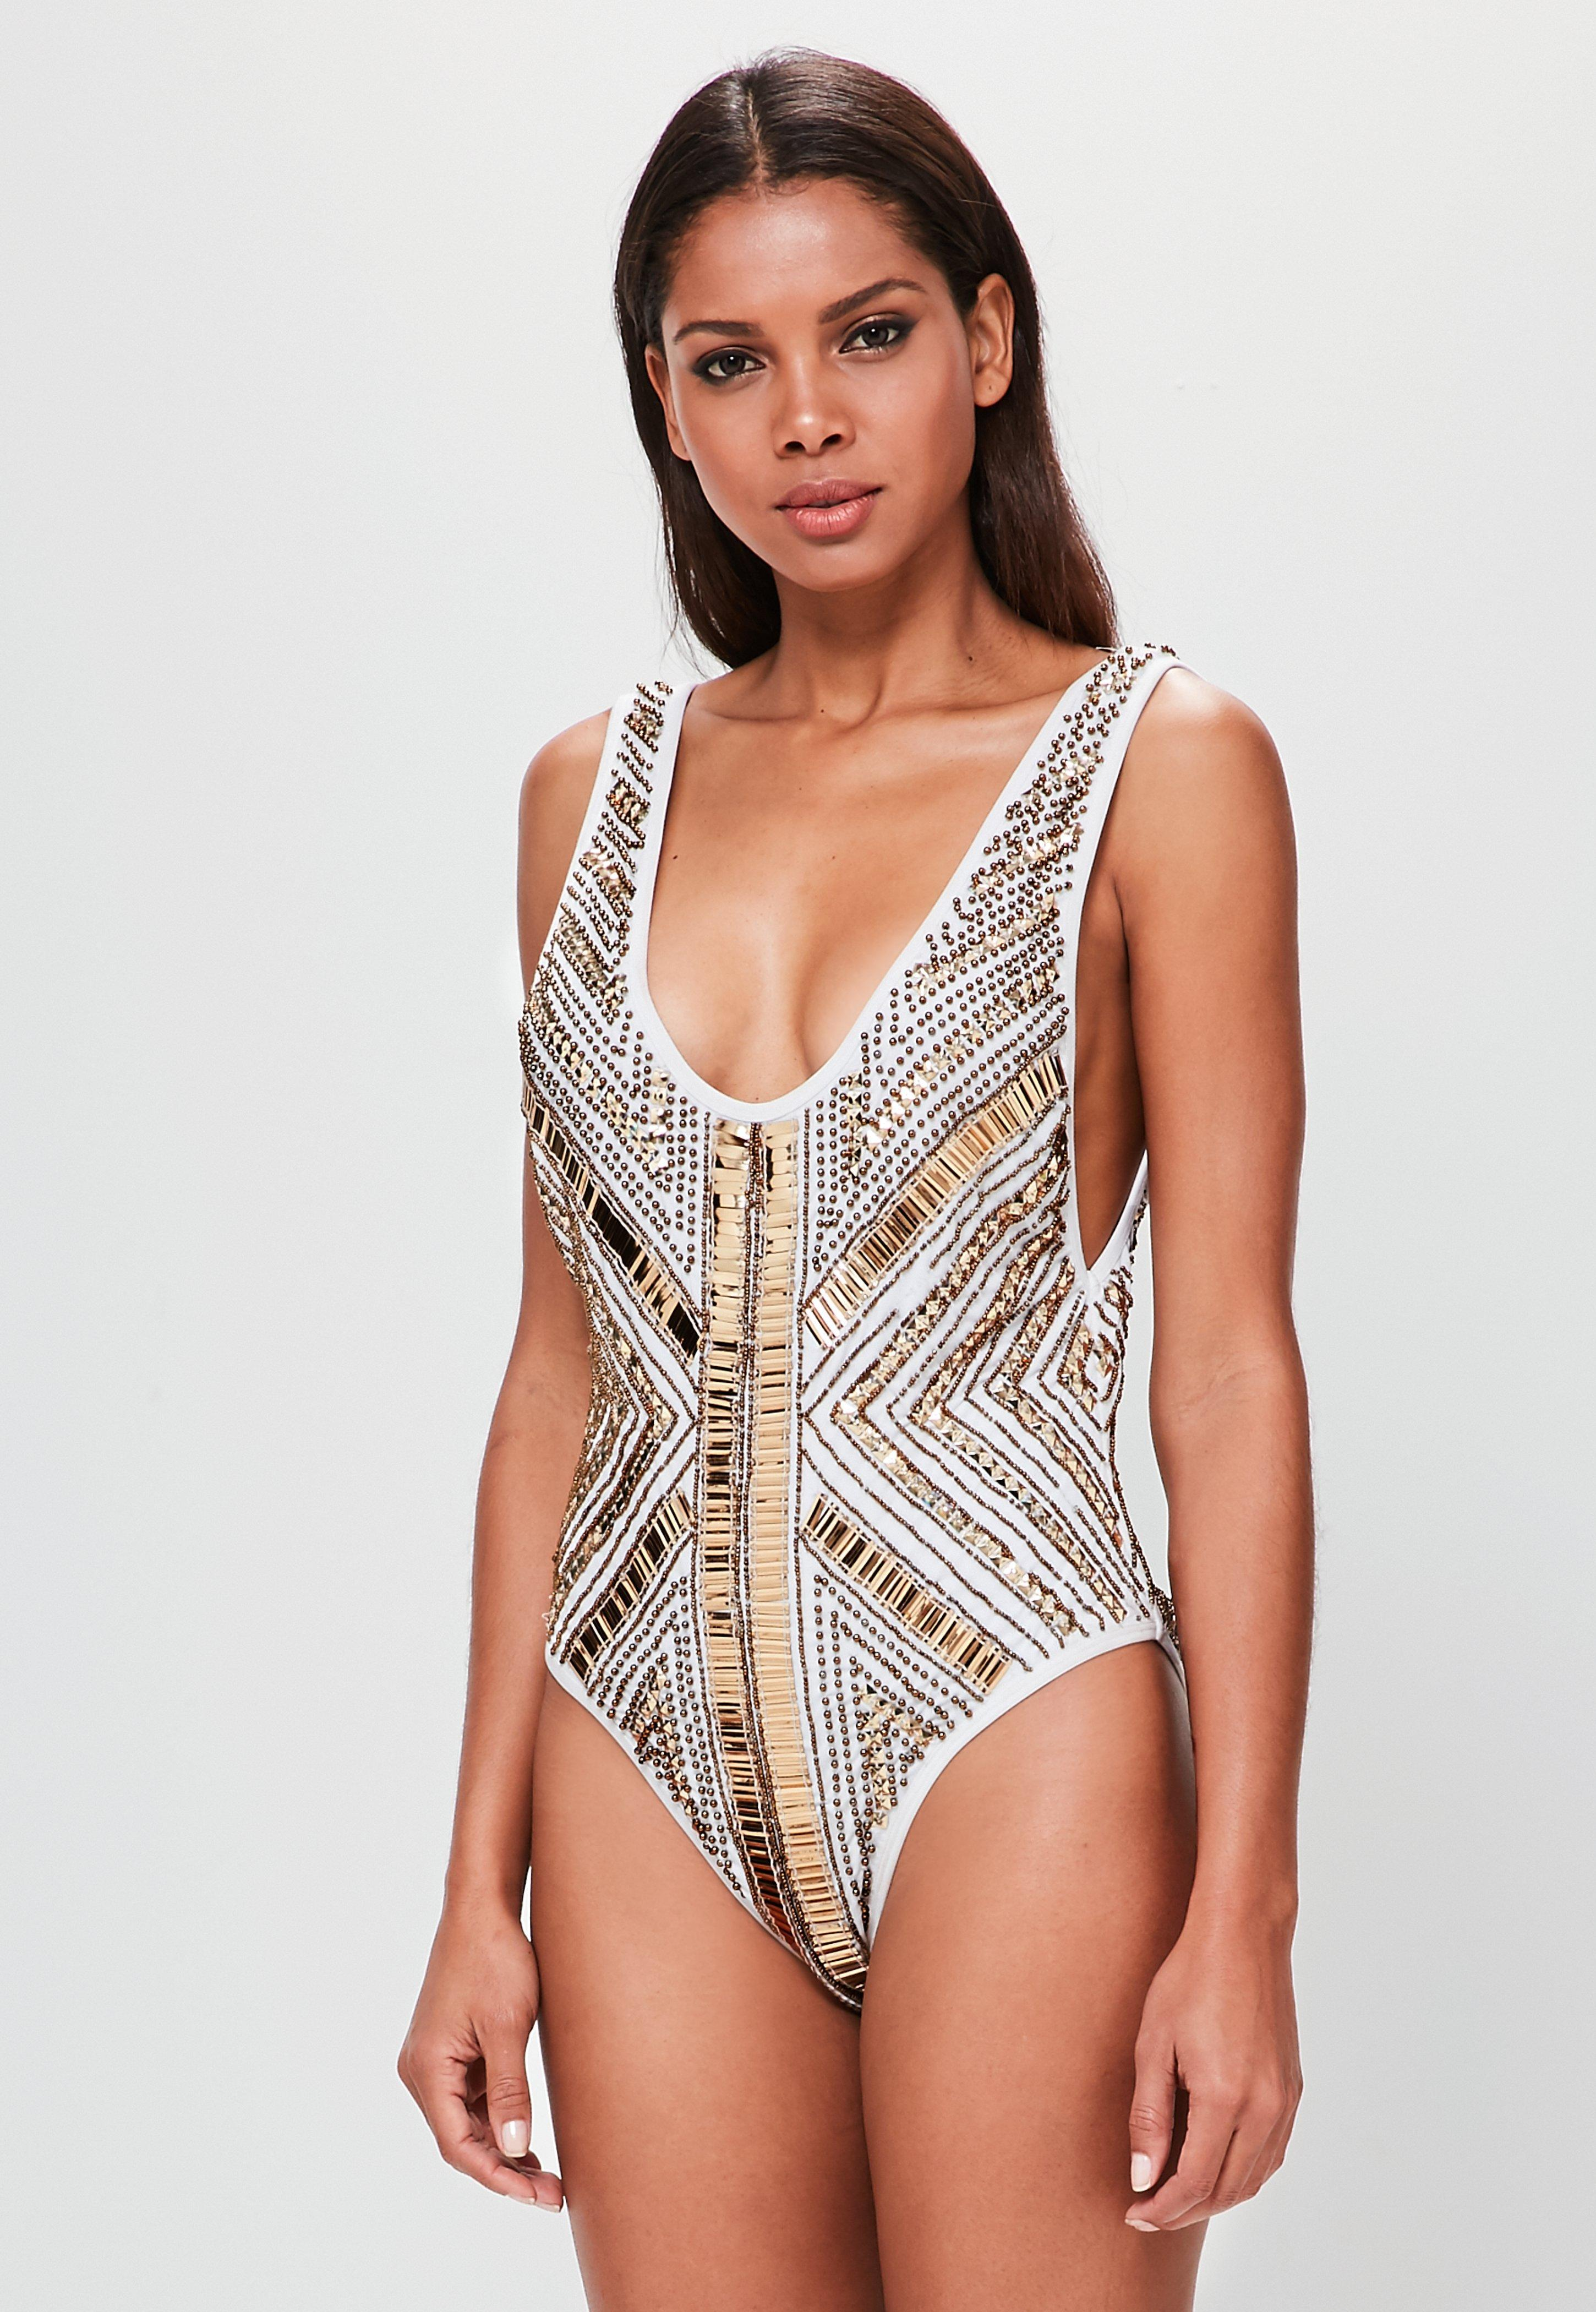 Lyst - Missguided Peace + Love Gold Embellished Bodysuit in Metallic 563f1c409